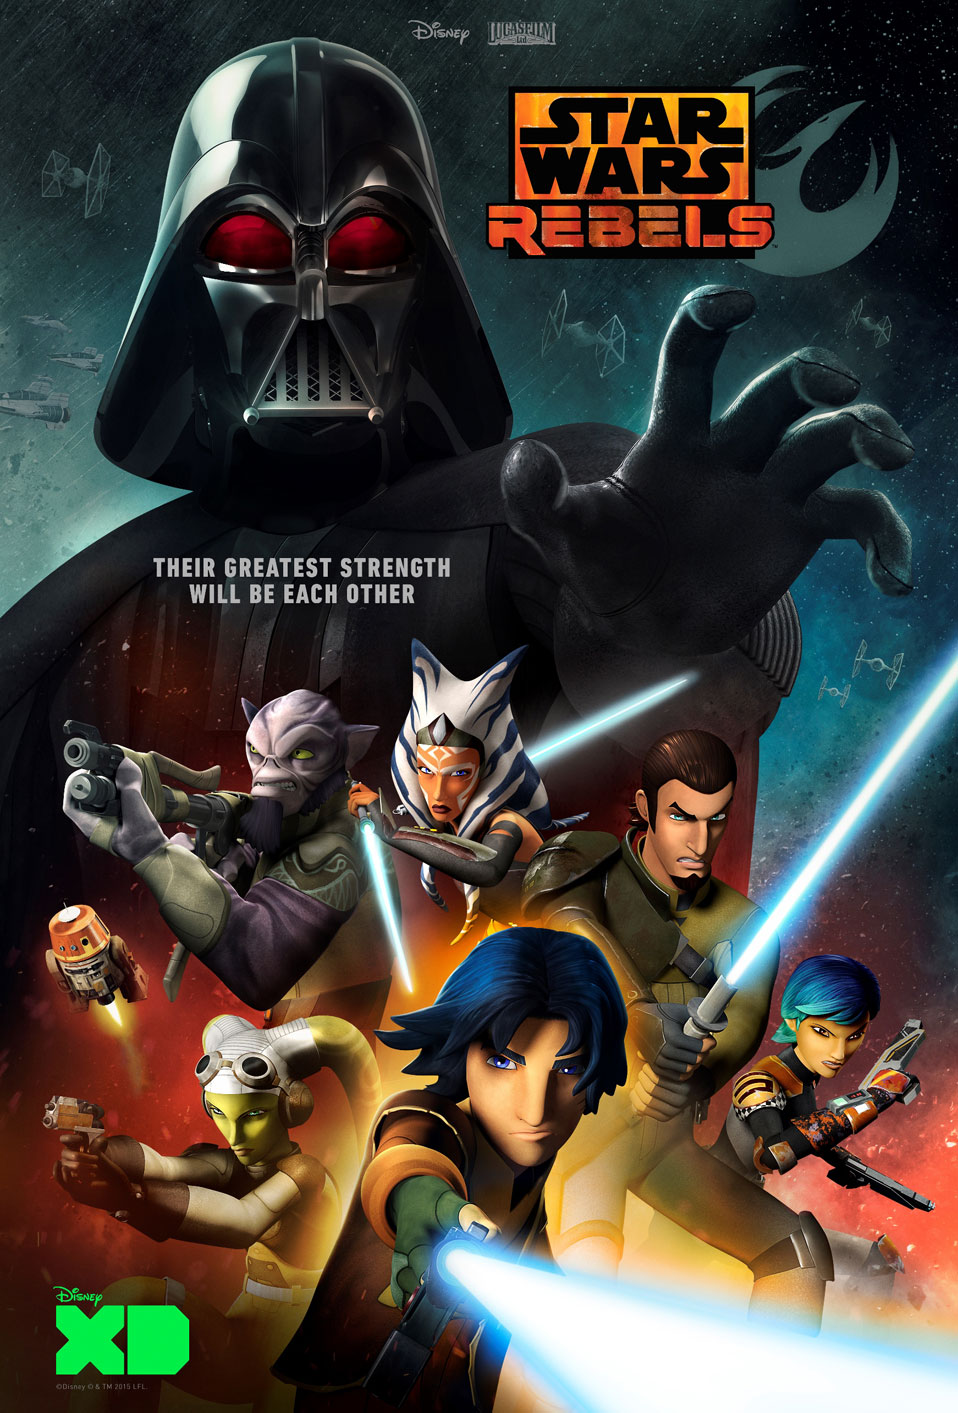 Star Wars Rebels Season 2 Poster